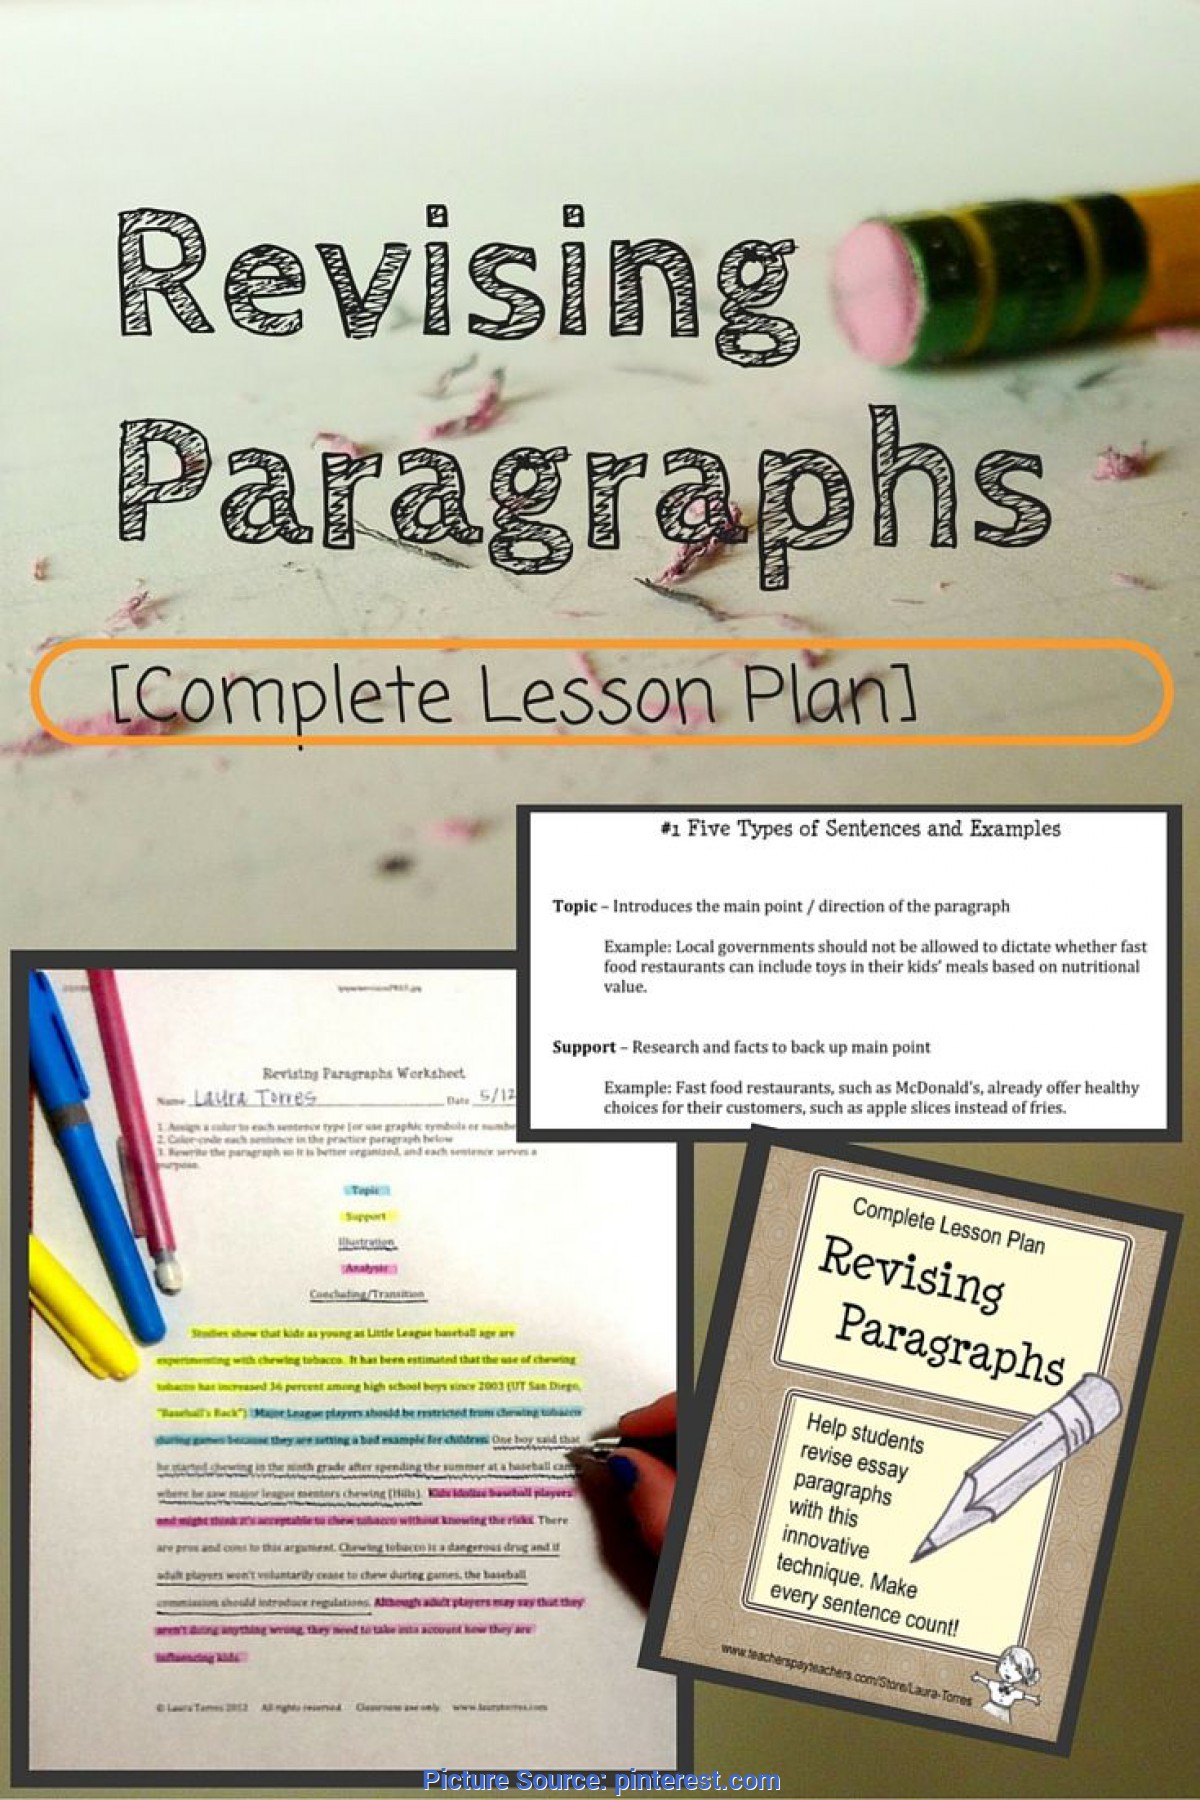 Useful How To Make Lesson Plan For Revision Revising